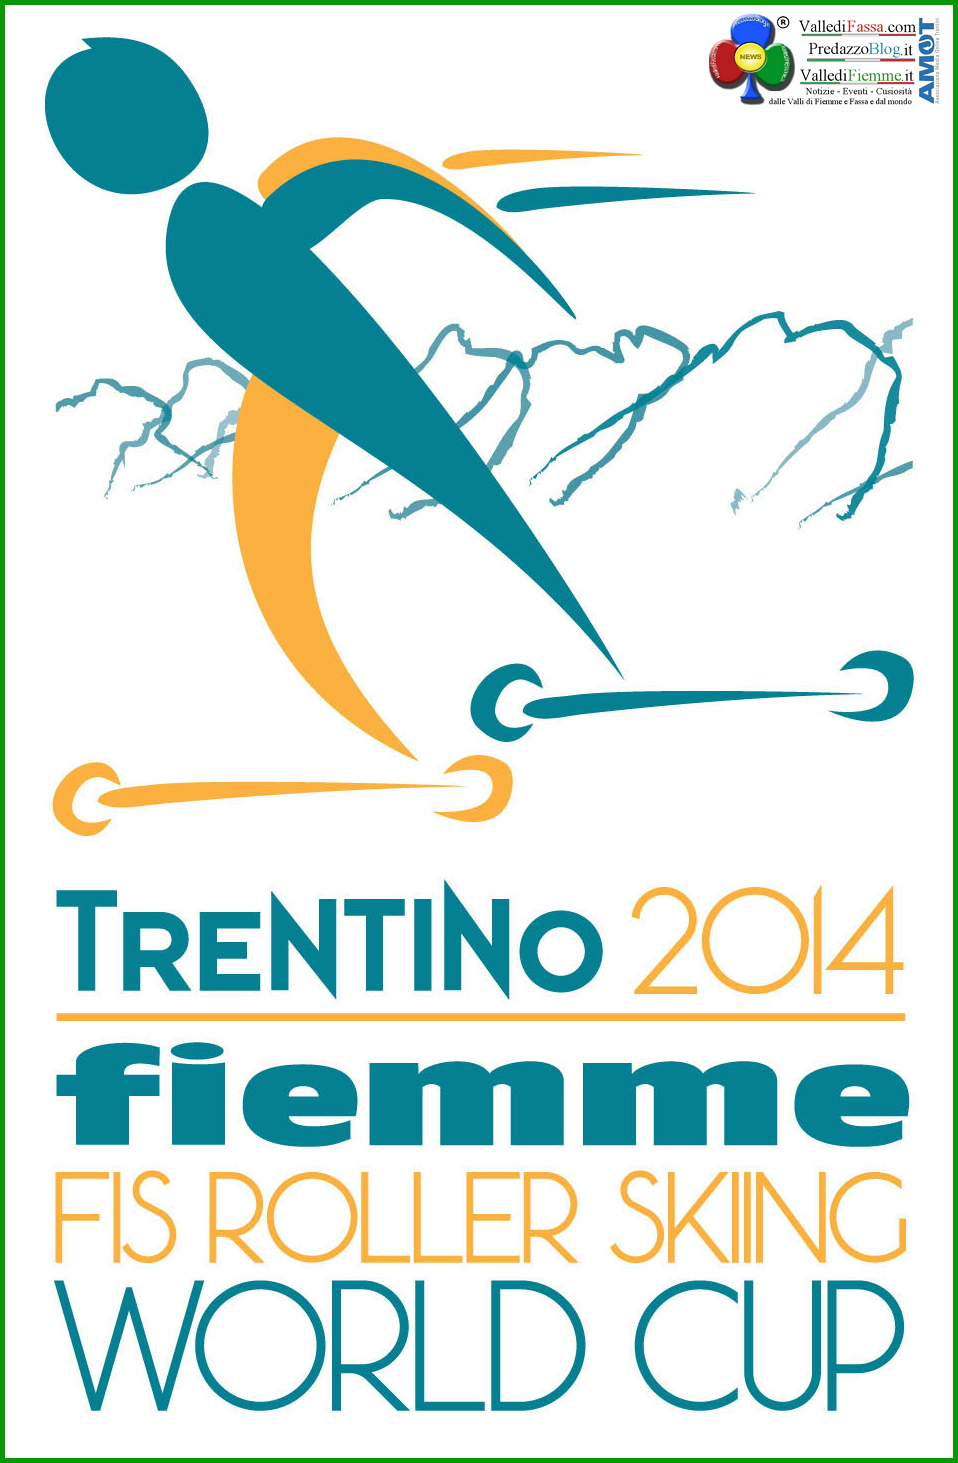 fiemme roller skiing 2014 world cup  Roller Ski World Cup 2014 in Valle di Fiemme